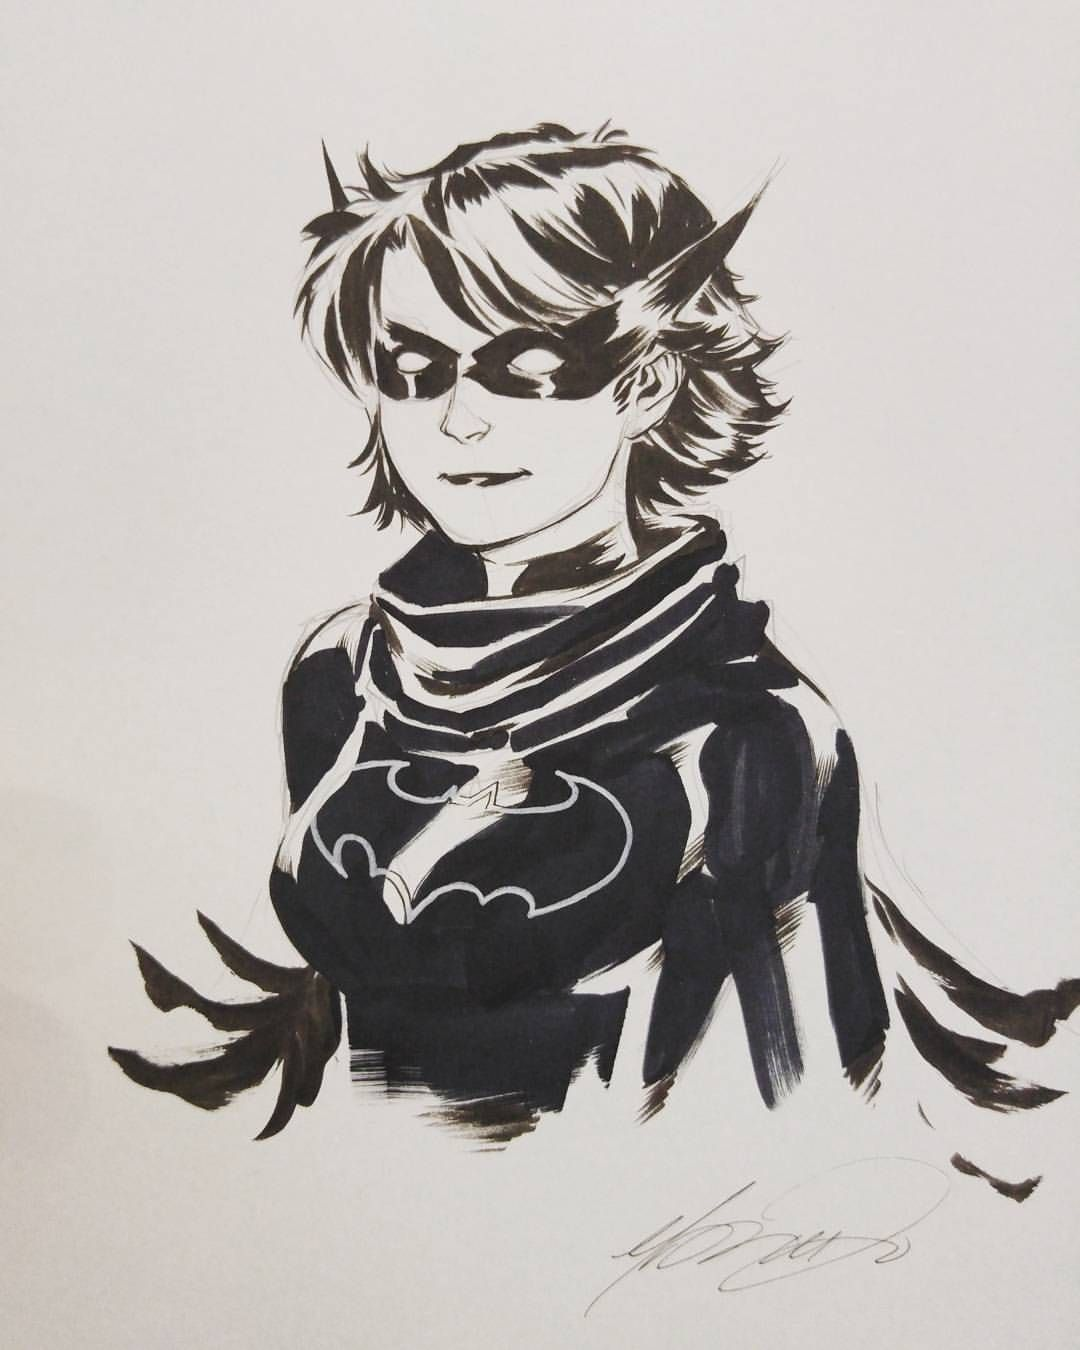 Black Bat Cass Cain by Marcus To